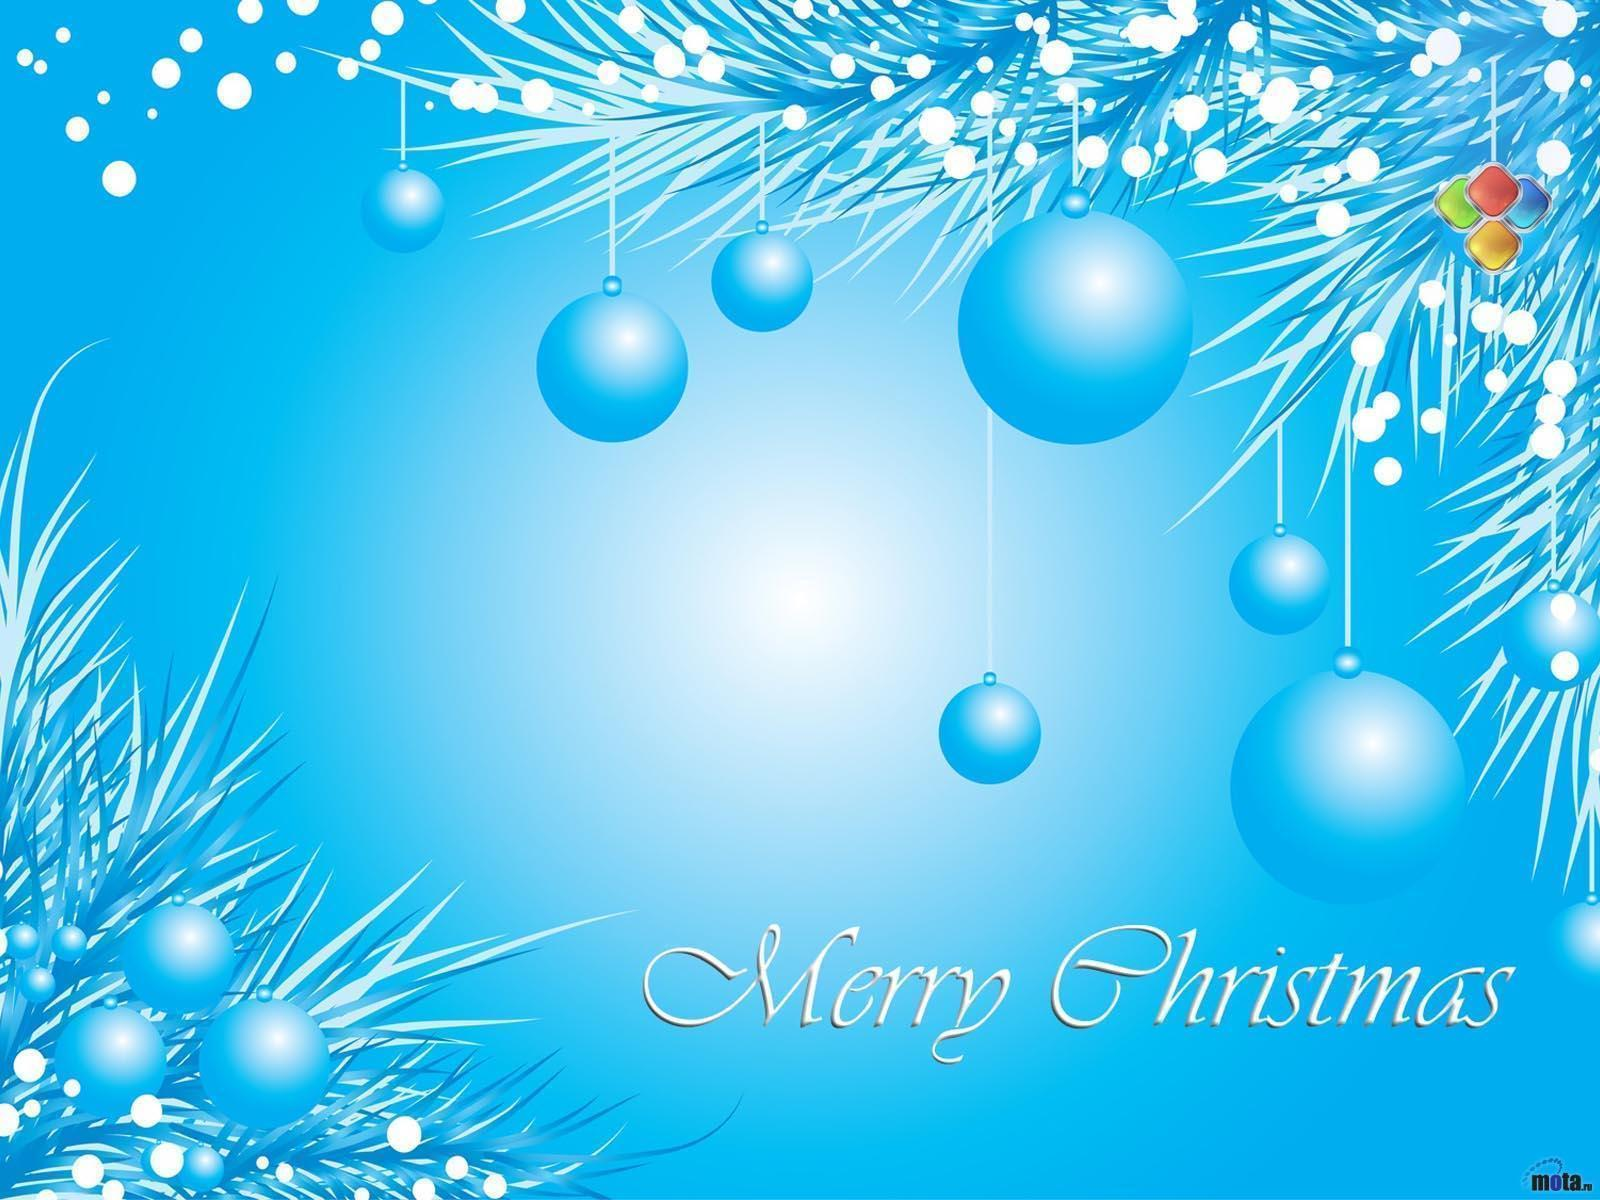 Merry Christmas Wall Lights : Blue Christmas Wallpapers - Wallpaper Cave